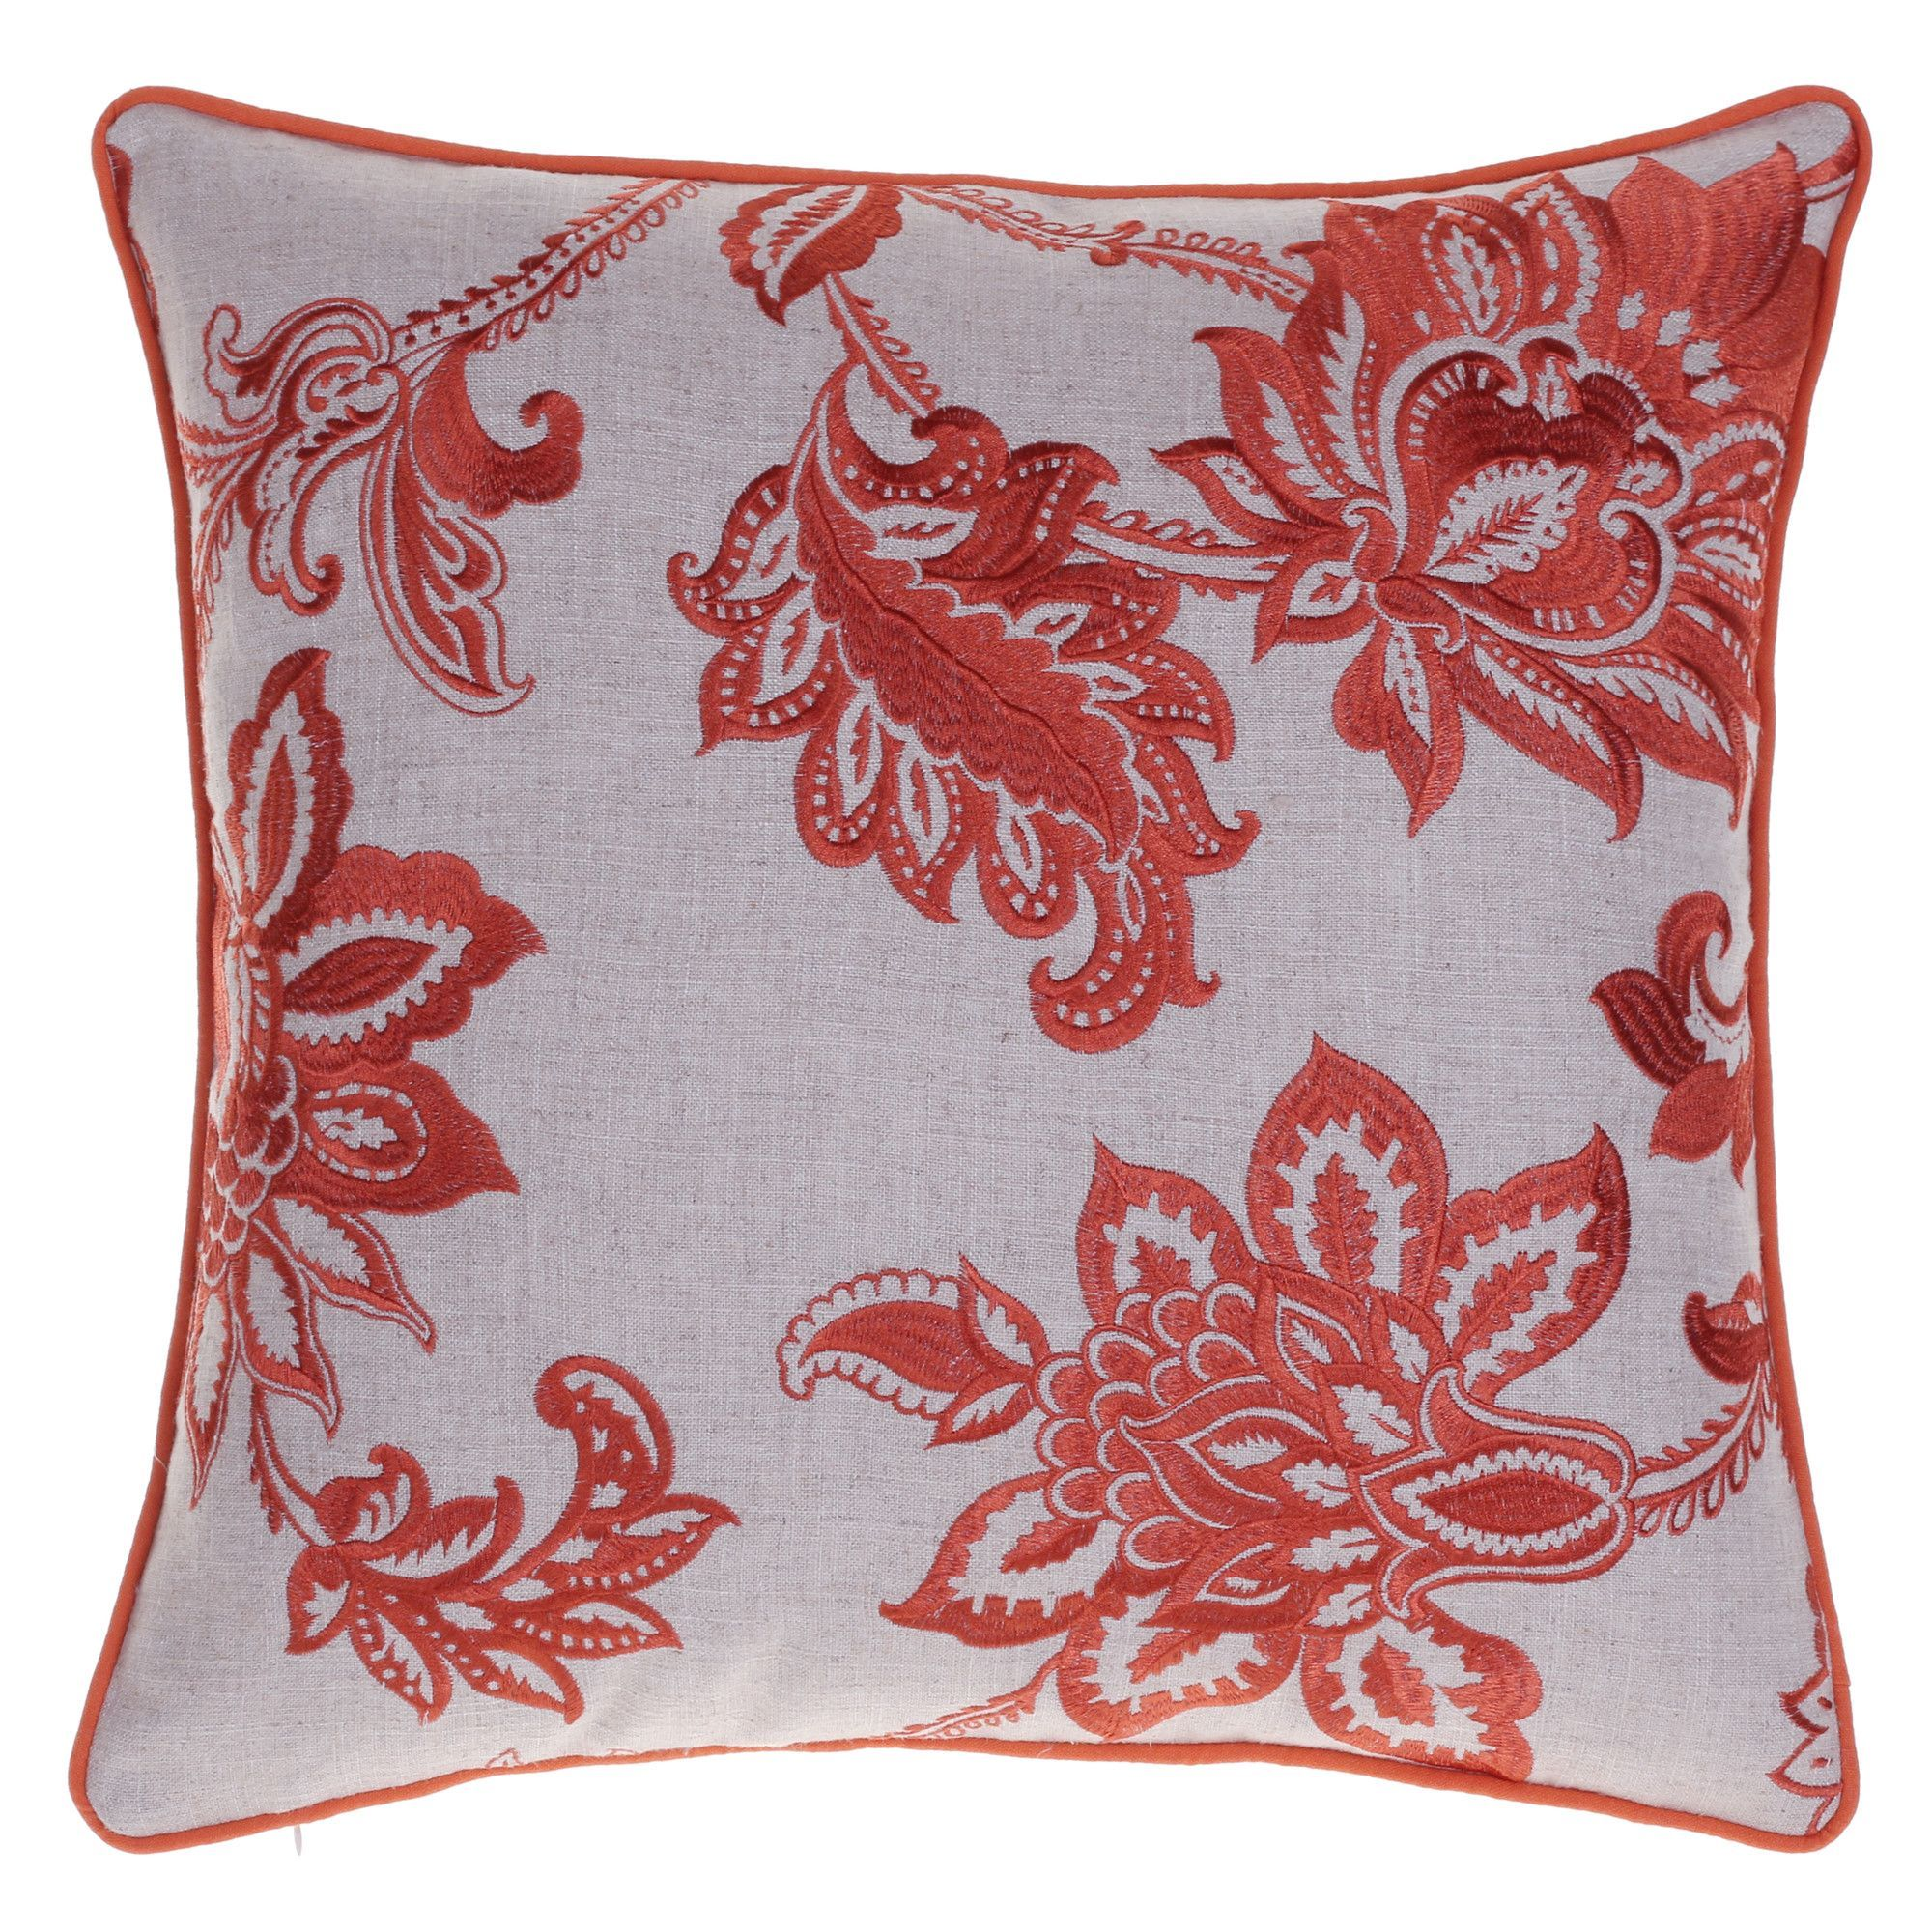 Shop Wayfair for Decorative Pillows to match every style and ...